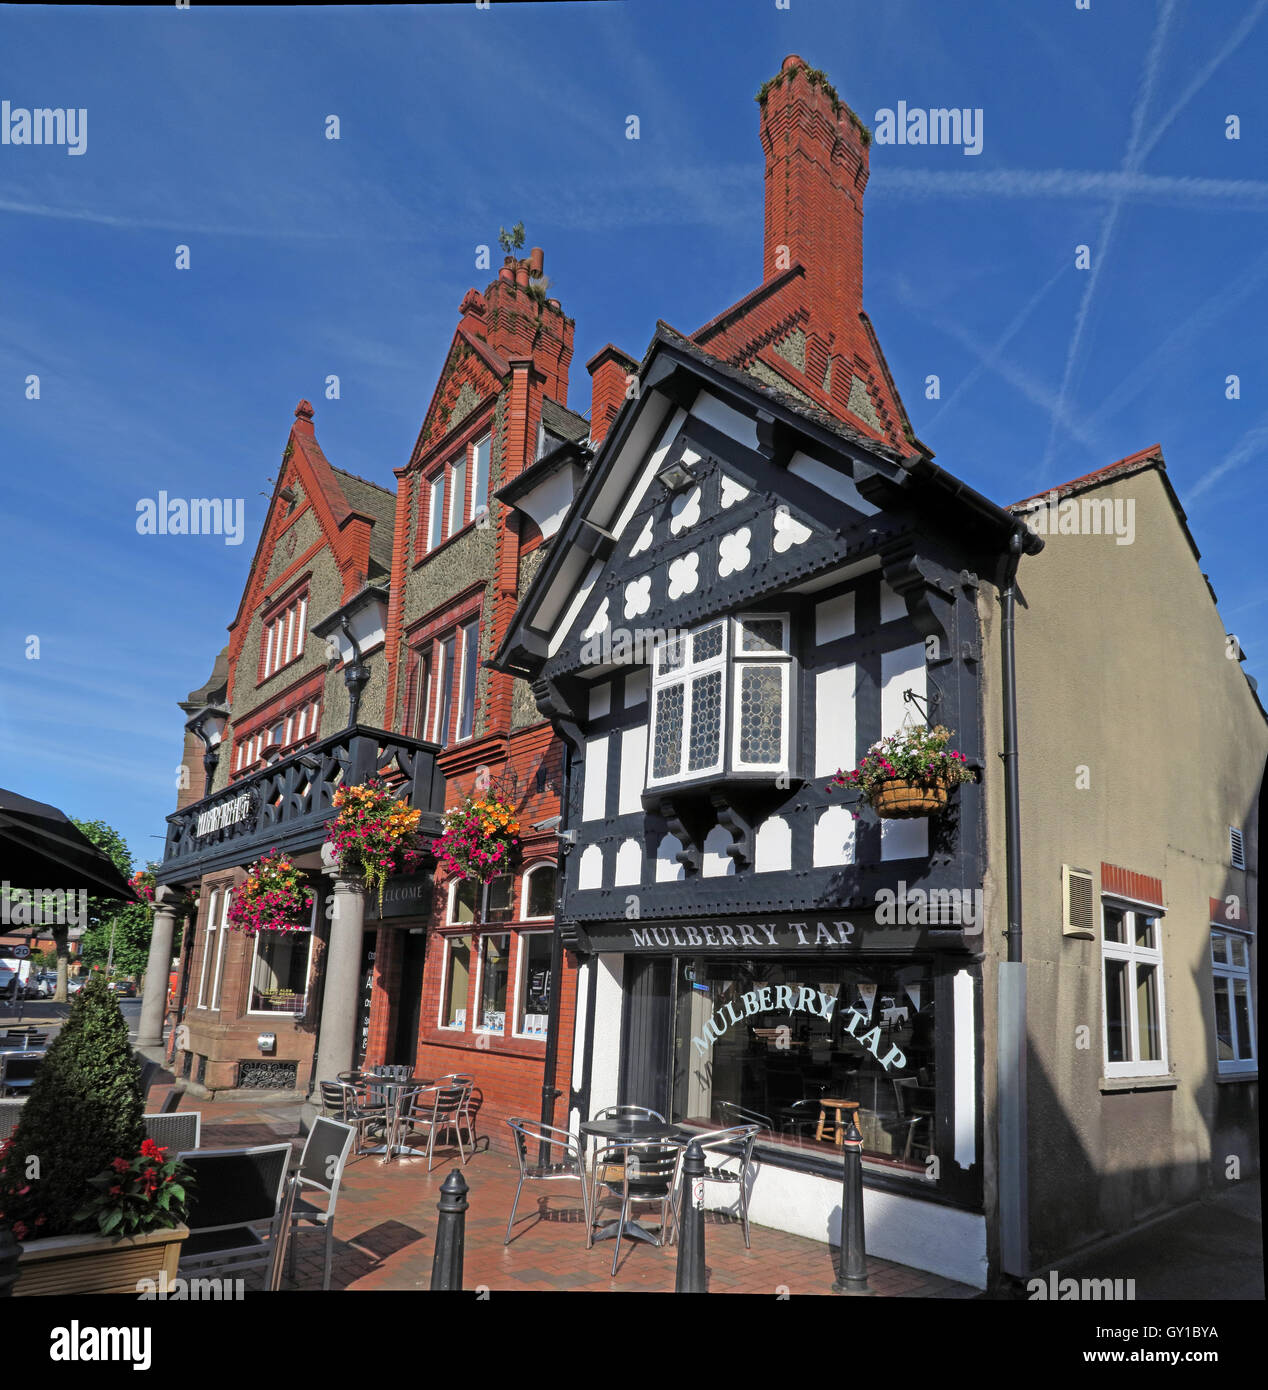 Building,wooden,tudor,architecture,Mulberry,Tap,pubs,bar,bars,south,Warrington,Public,house,Cheshire,England,UK,Victoria,Square,Sq,Mulberry Tap,Mulberry Tree,Stockton Heath,South Warrington,Victoria Square,Victoria Sq,GoTonySmith,@HotpixUK,Tony,Smith,UK,GB,Great,Britain,United,Kingdom,English,British,England,Buy Pictures of,Buy Images Of,Images of,Stock Images,Tony Smith,United Kingdom,Great Britain,British Isles